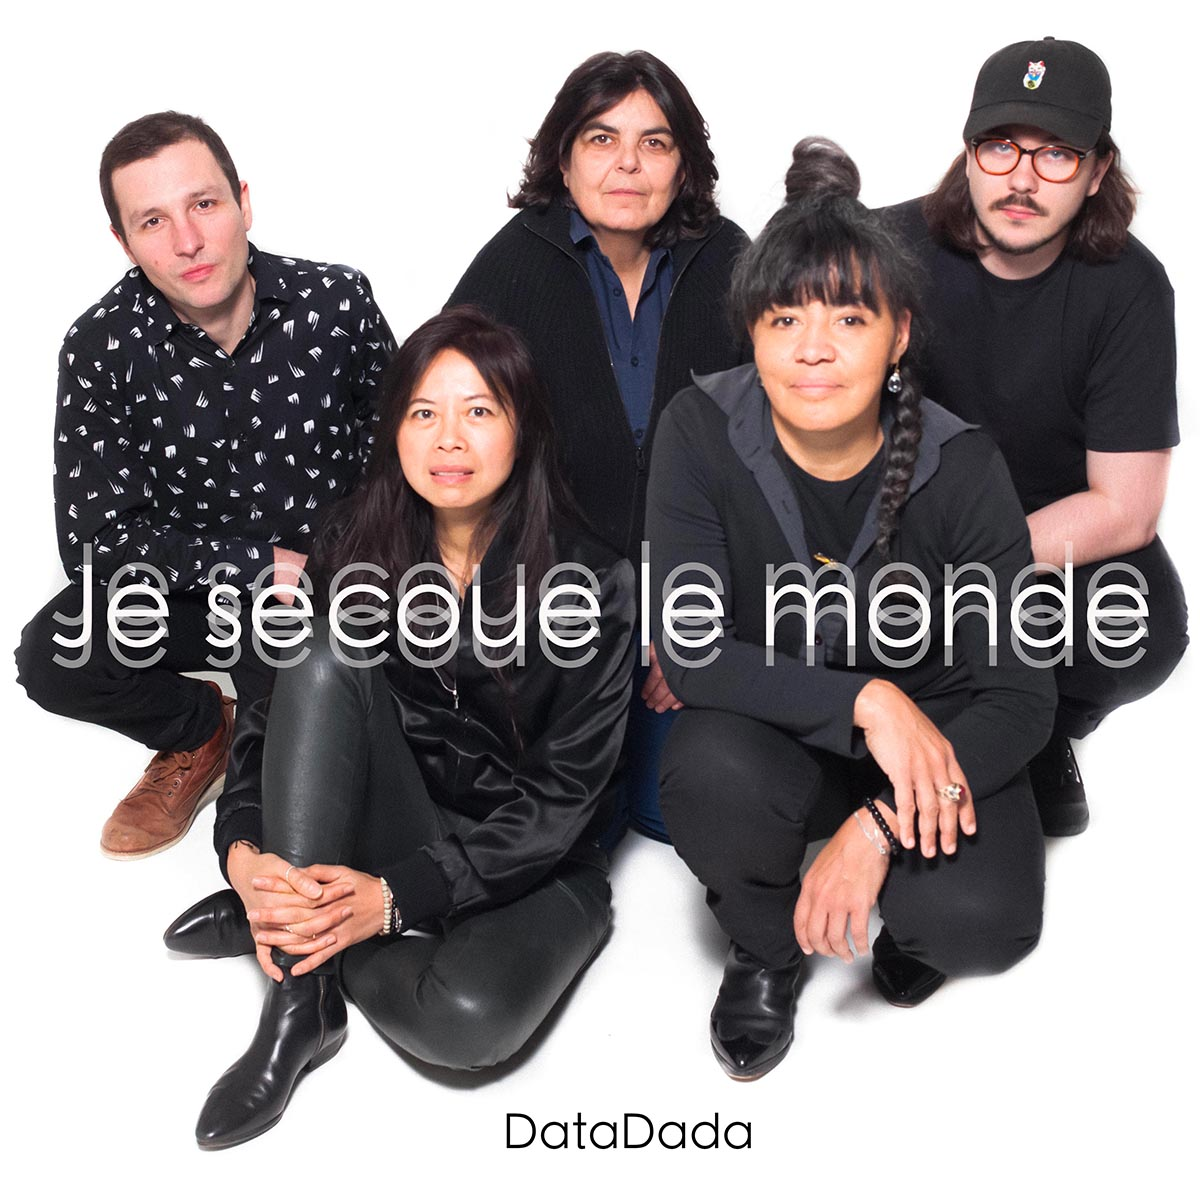 DataDada Rock Band sings Je Secoue le Monde (I Rock The World)